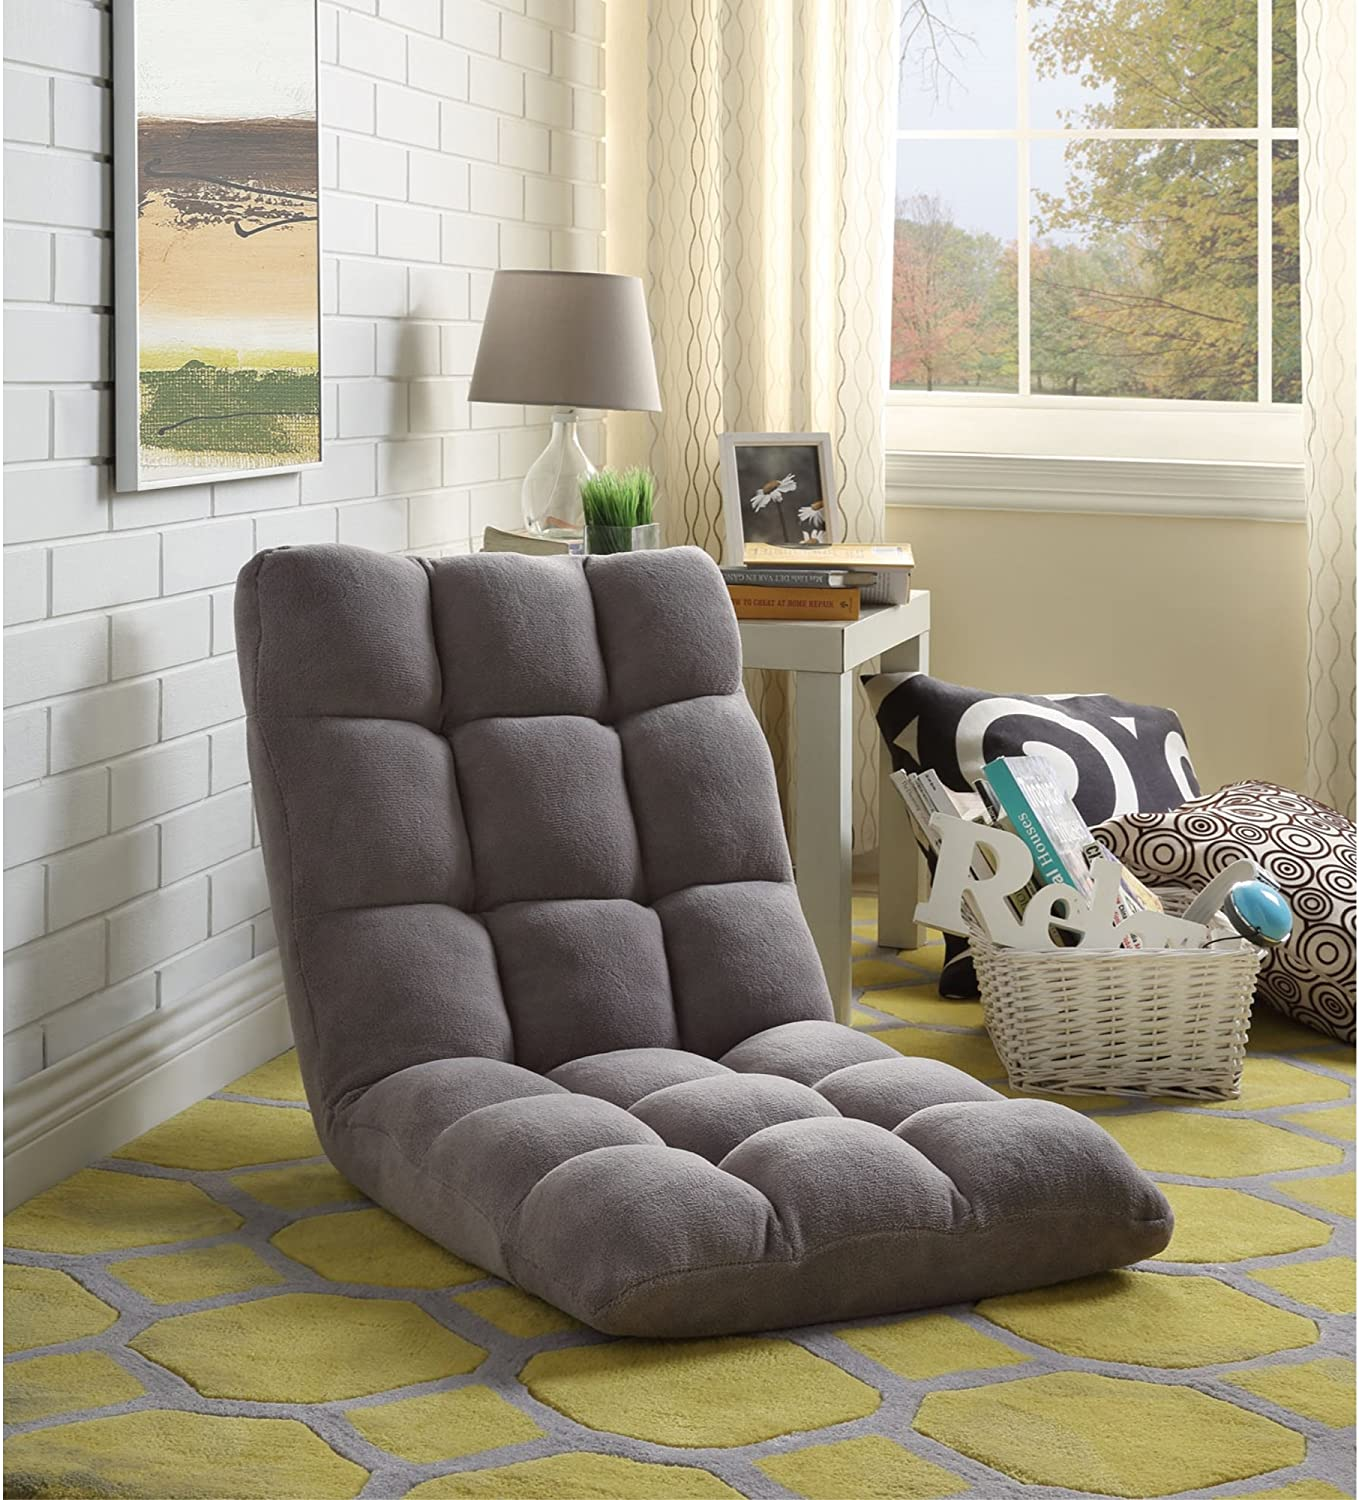 Loungie Microplush Recliner Chair, Grey